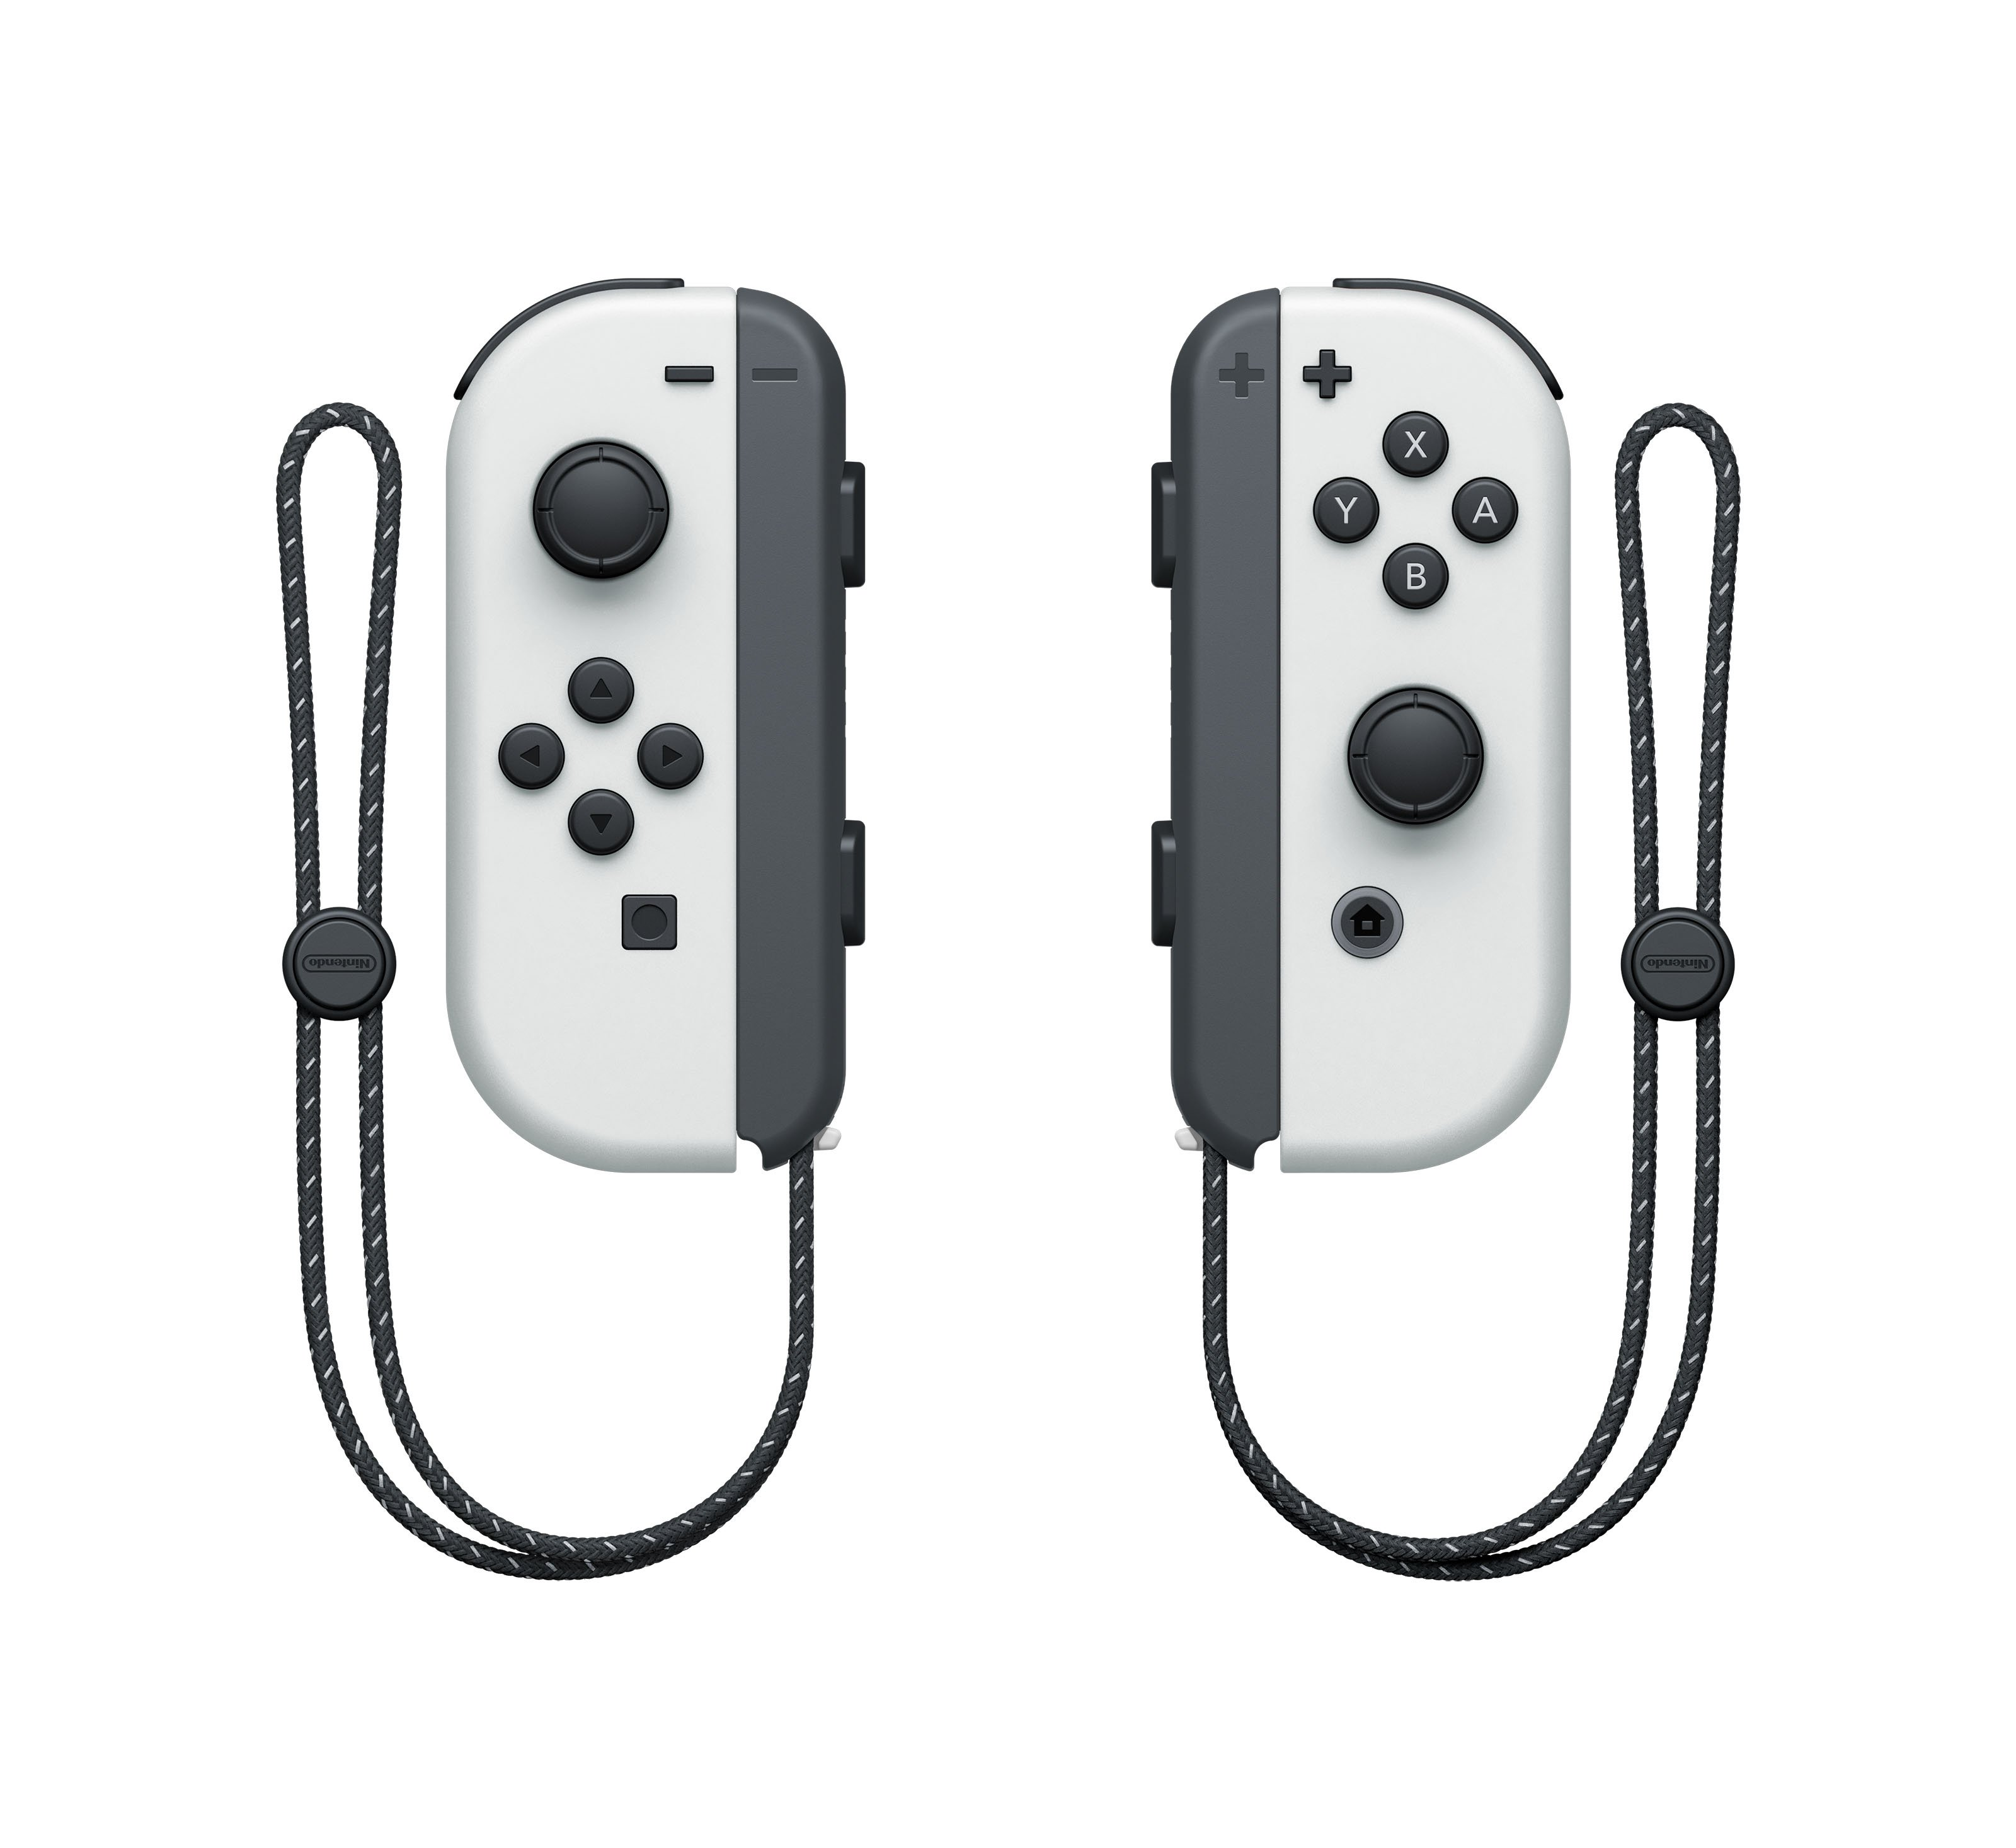 Switch OLED tried out: This is how it plays on the premium model!